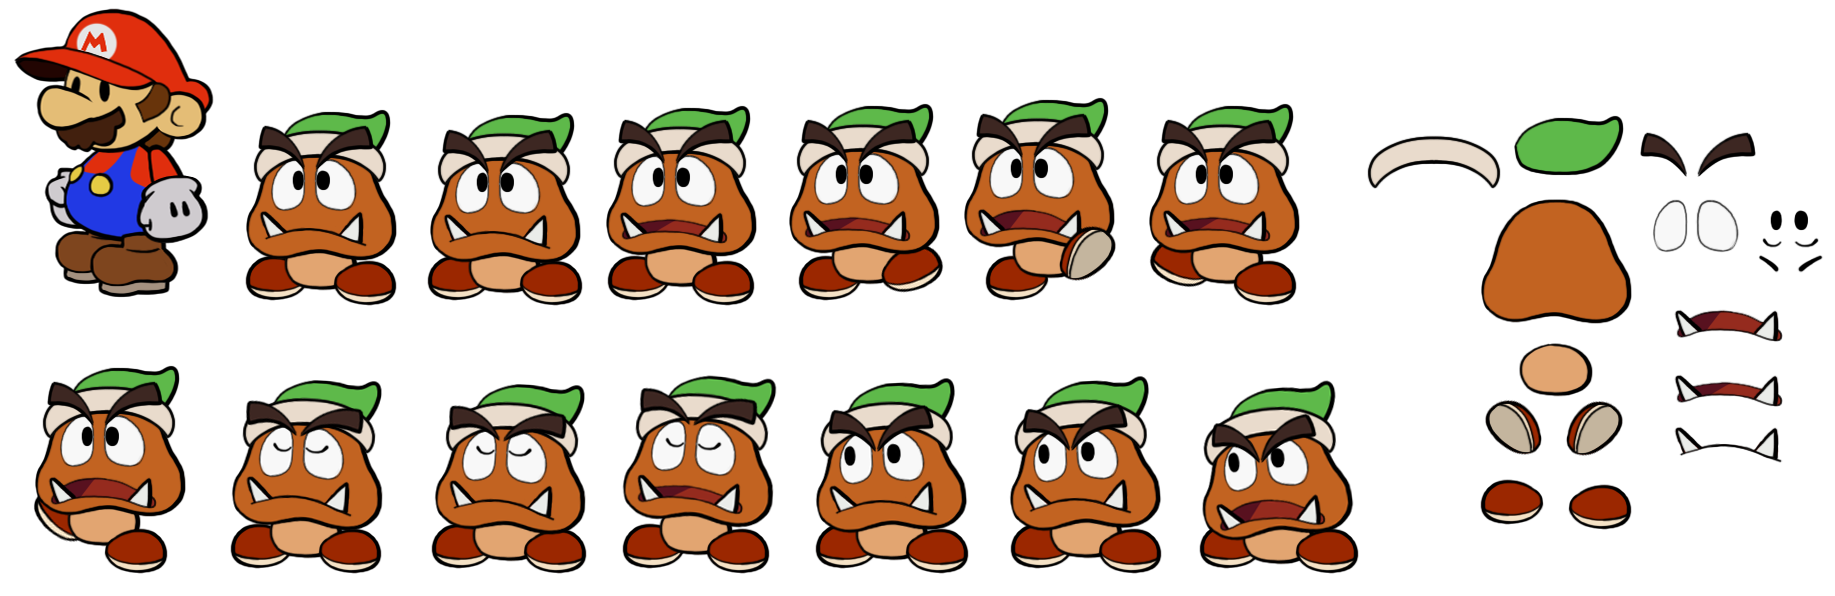 Rogueport Goombas (Paper Mario Style)